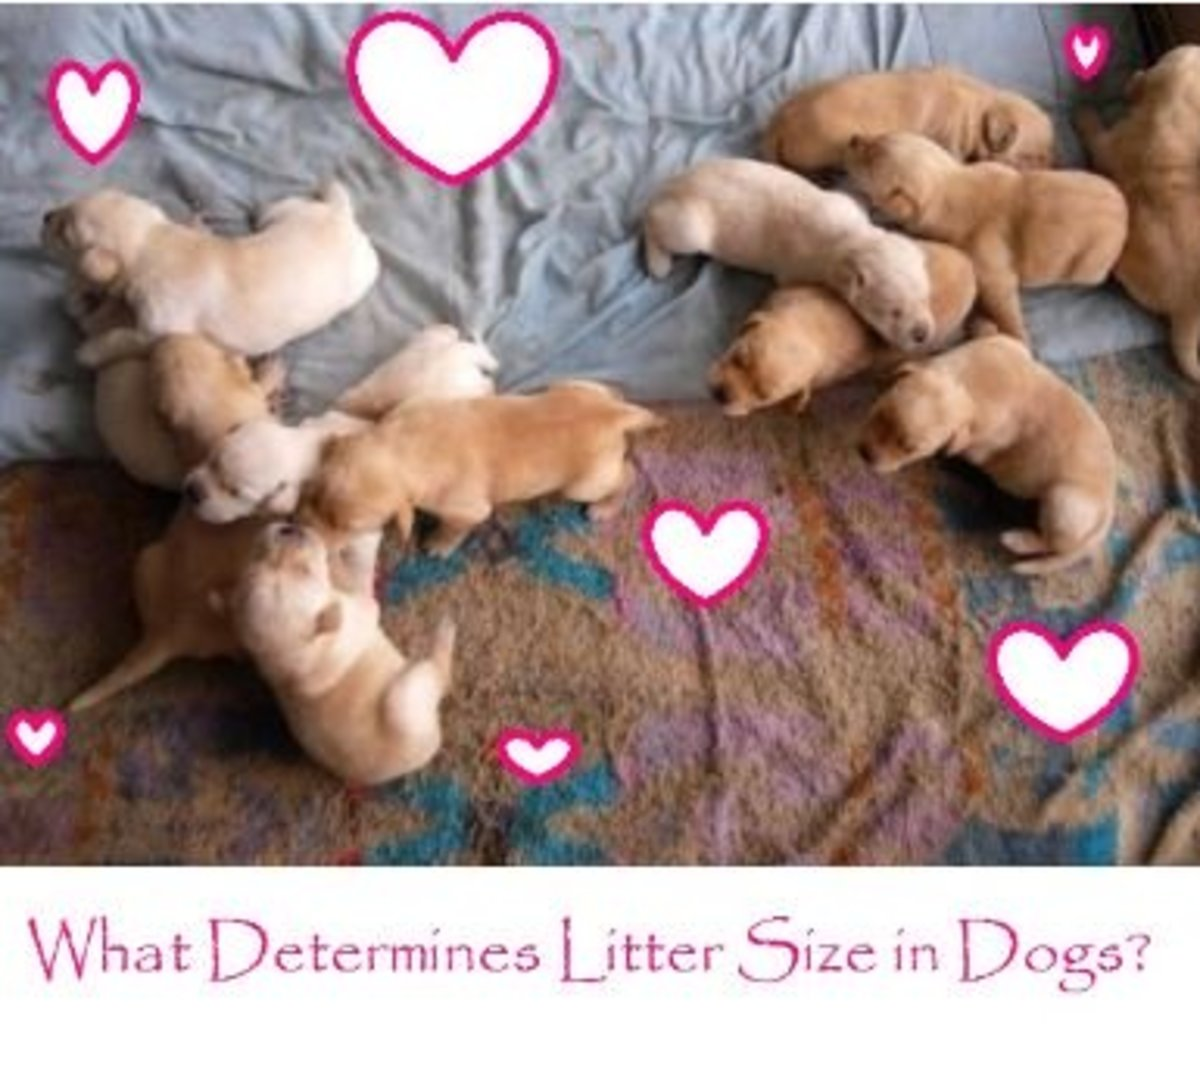 What Determines Litter Size Litter in Dogs?